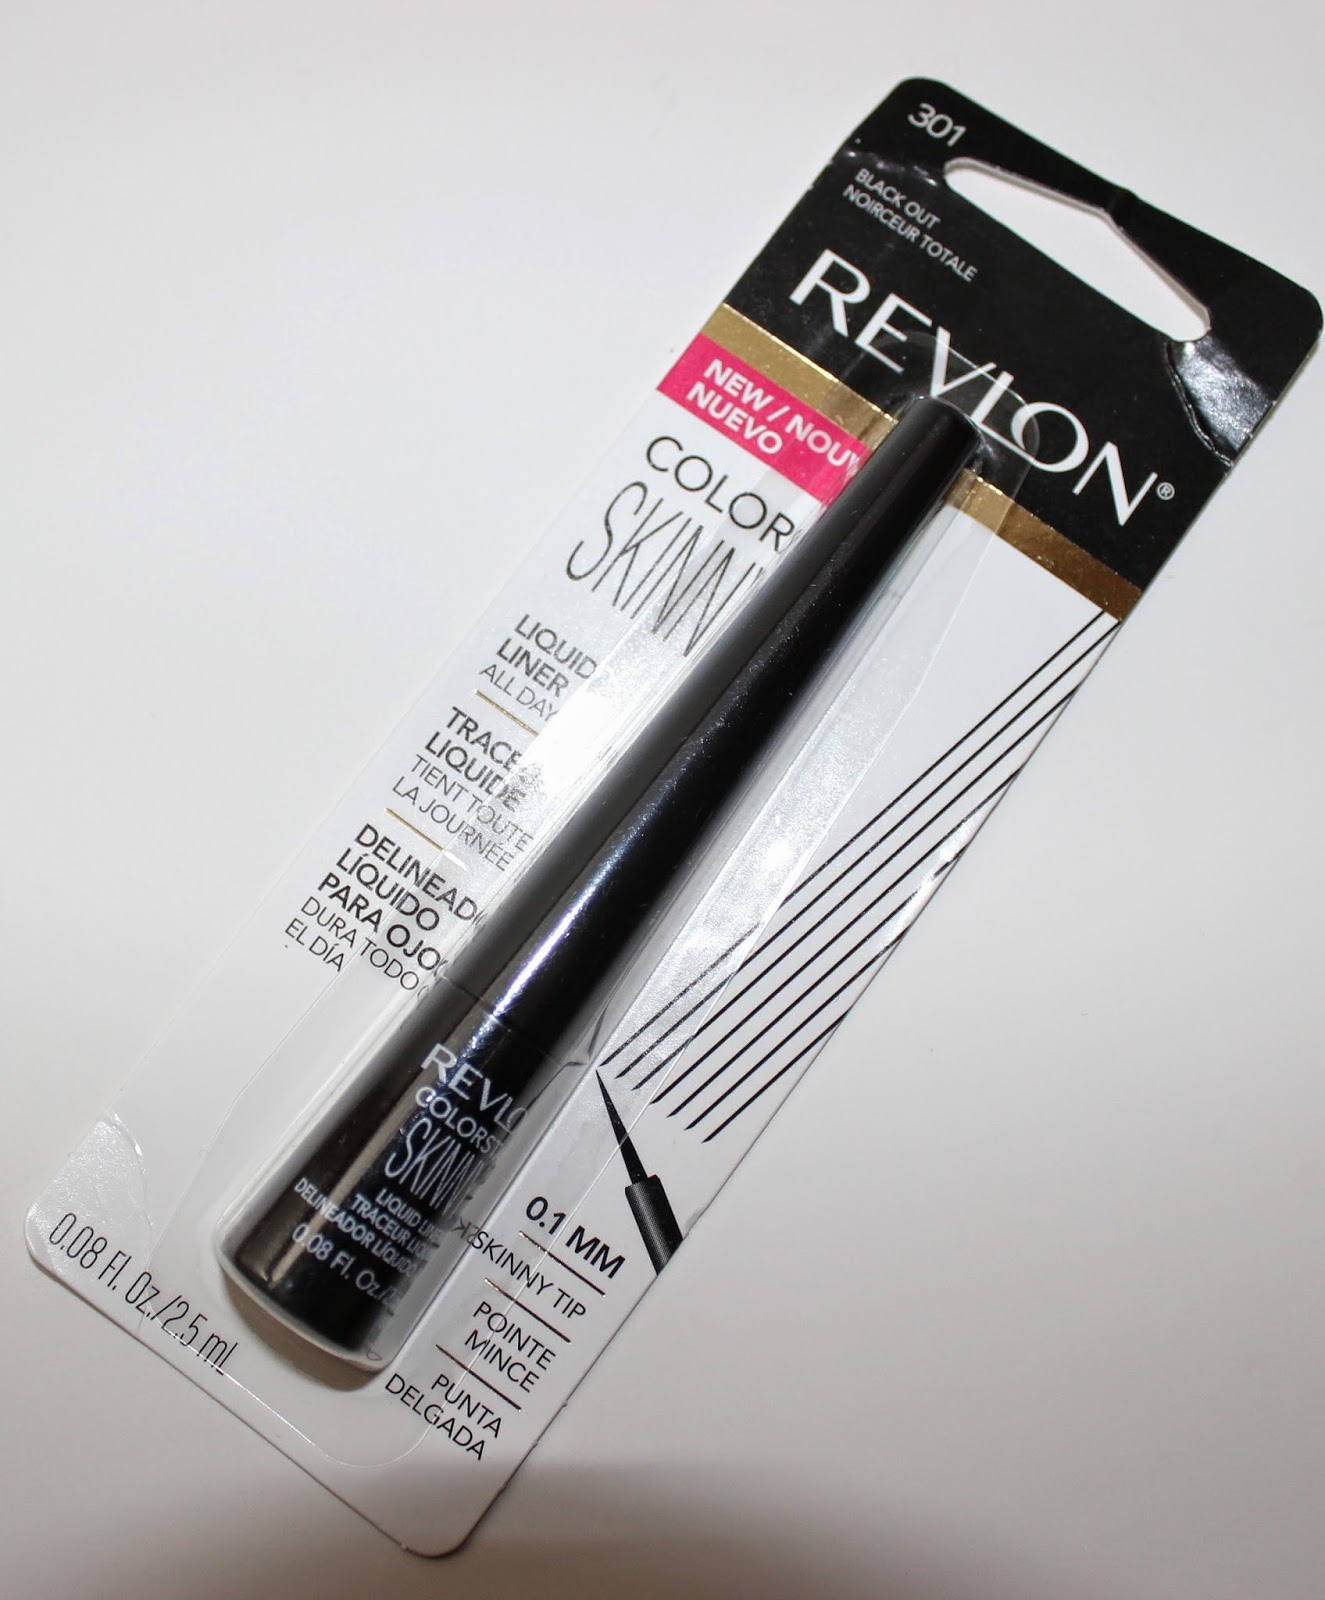 Revlon ColorStay Skinny Liquid Liner in Black Out Packaging